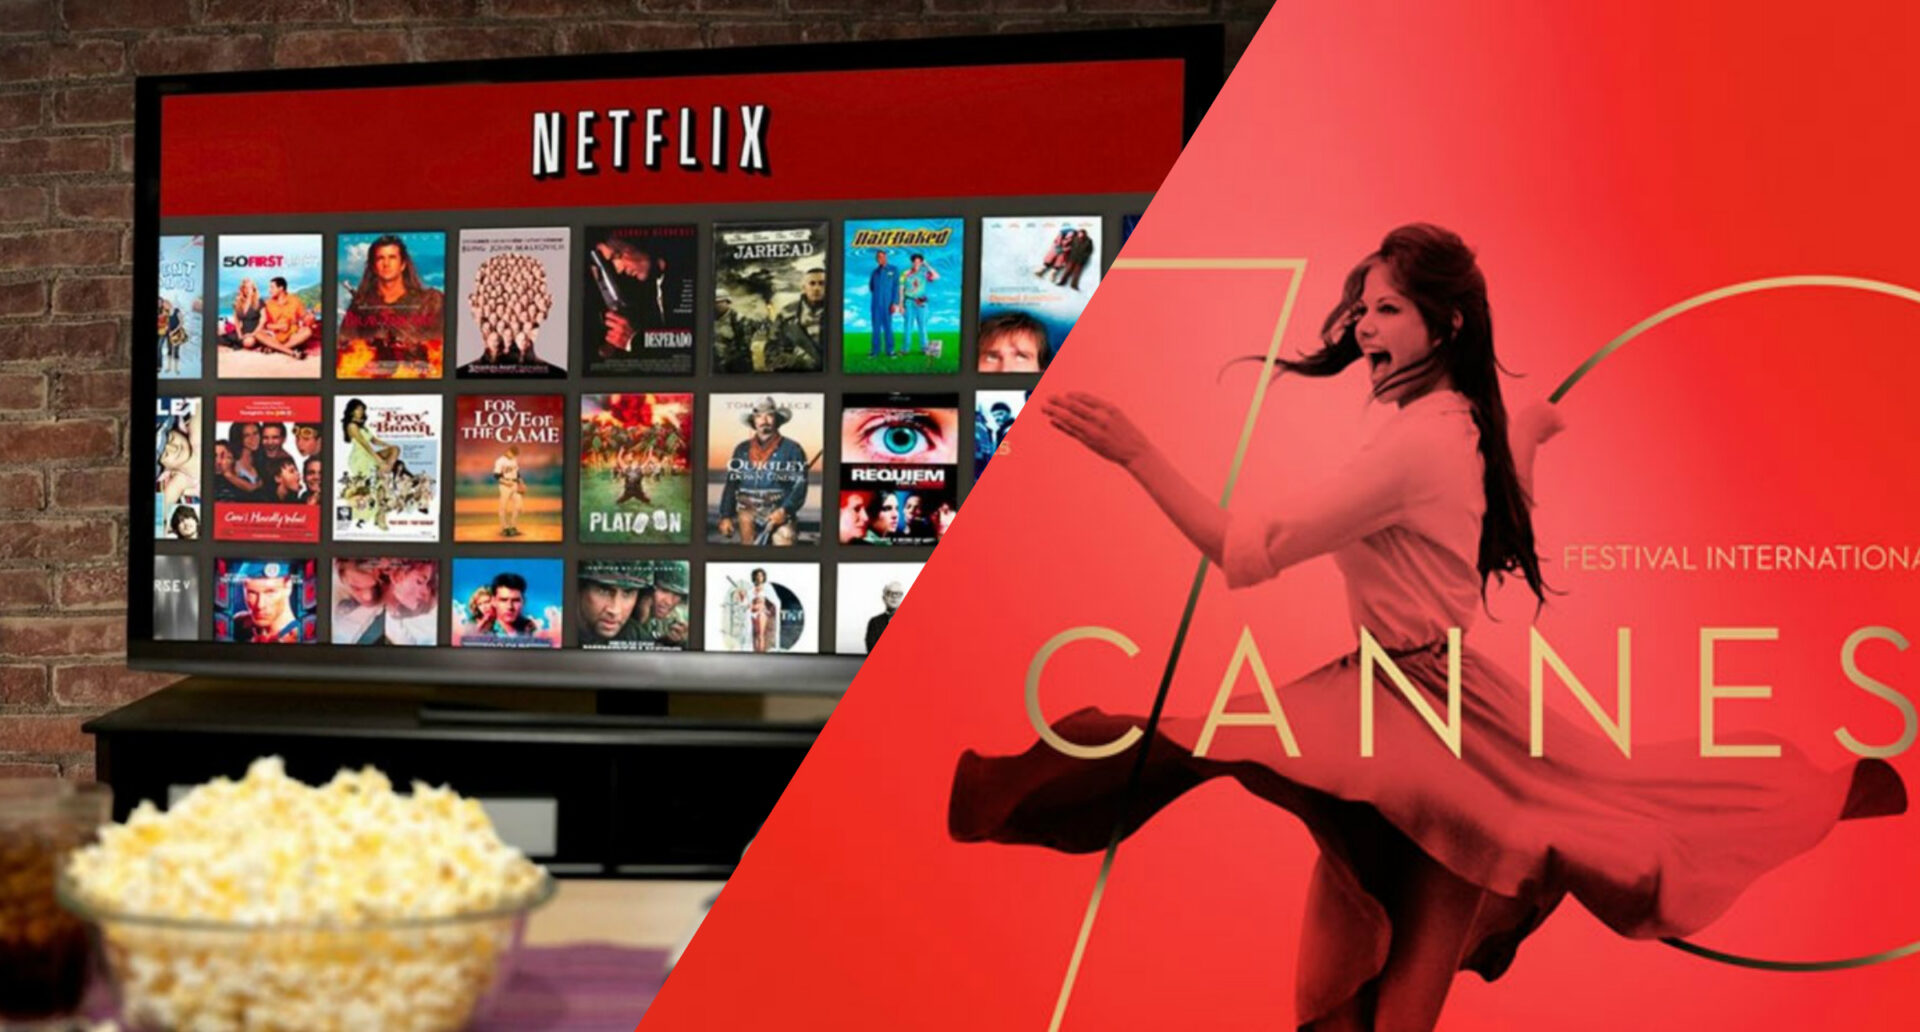 netflix vs cannes